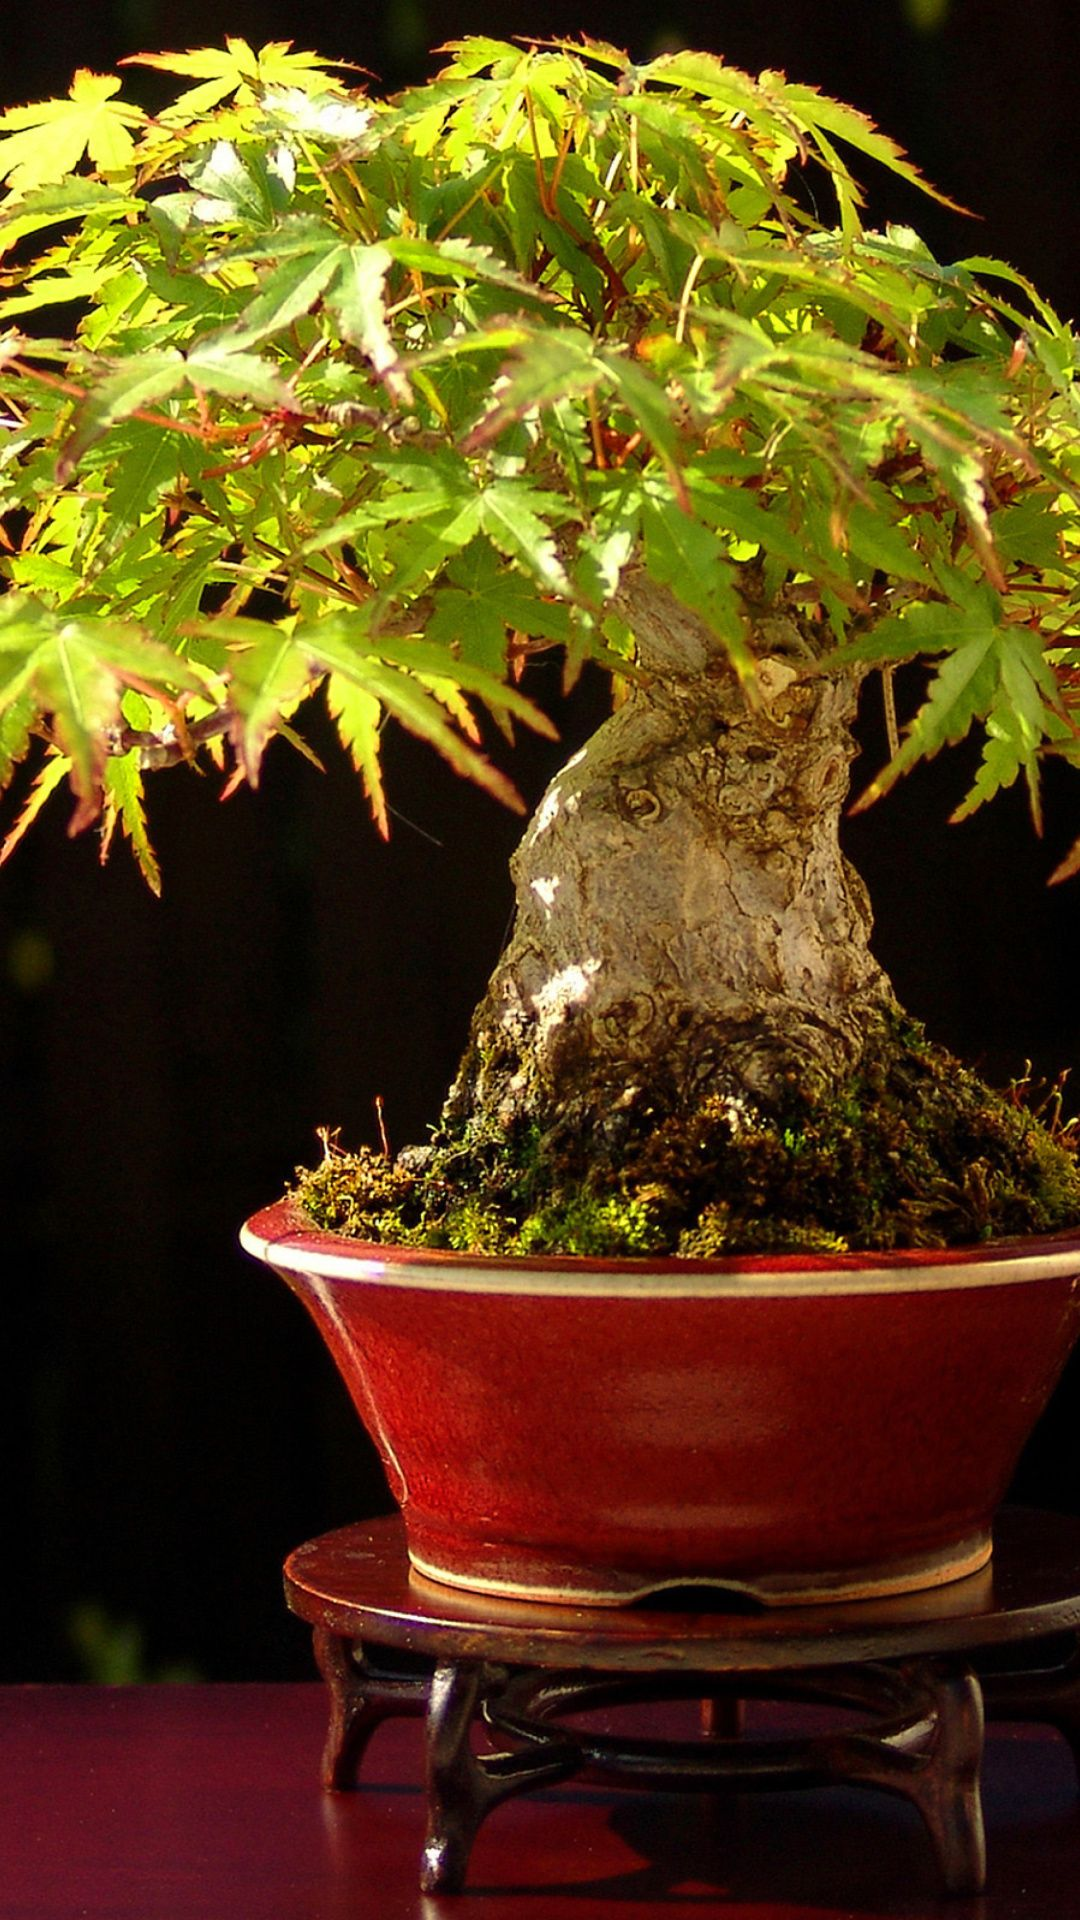 Bonsai Wallpaper : bonsai, wallpaper, Bonsai, IPhone, Wallpapers:, Images, WallpaperBoat